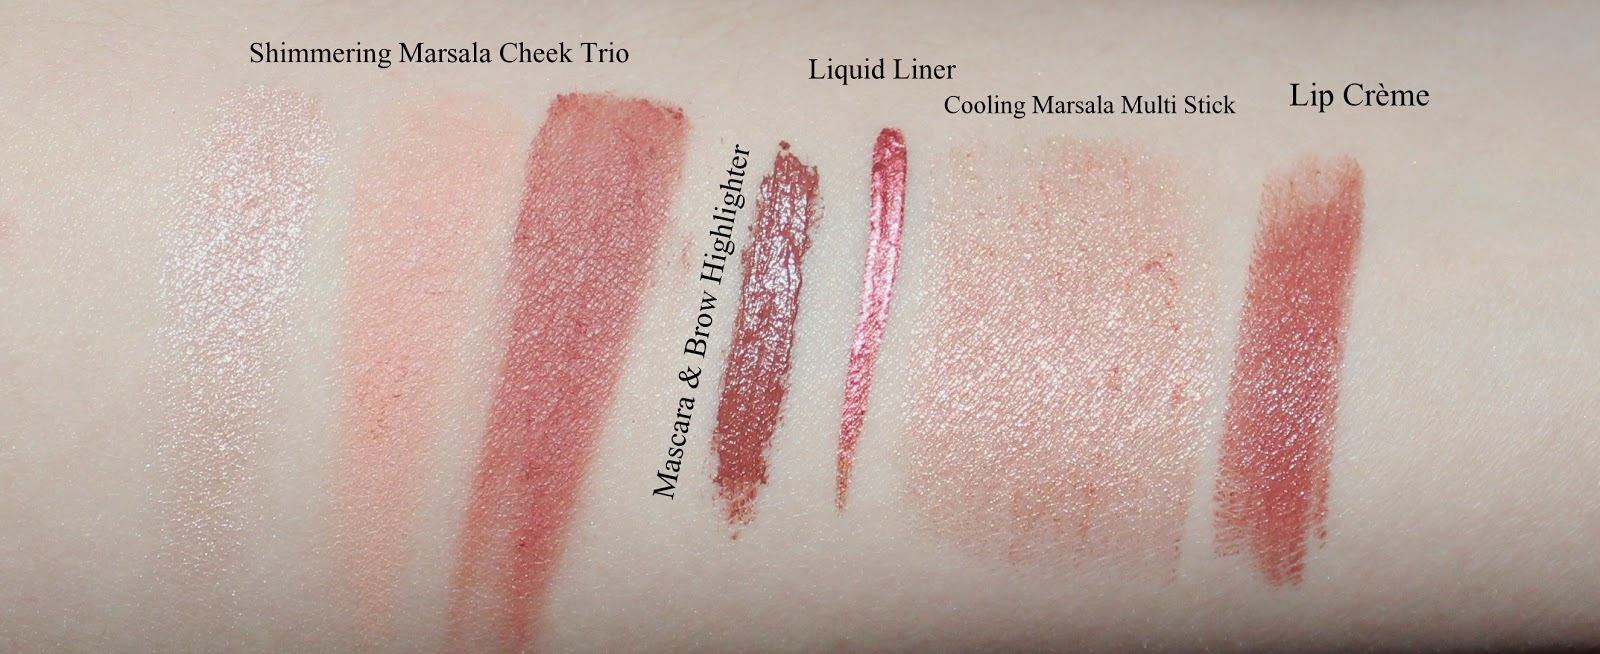 Sephora + Pantone Color of the Year 2015 Marsala Collection